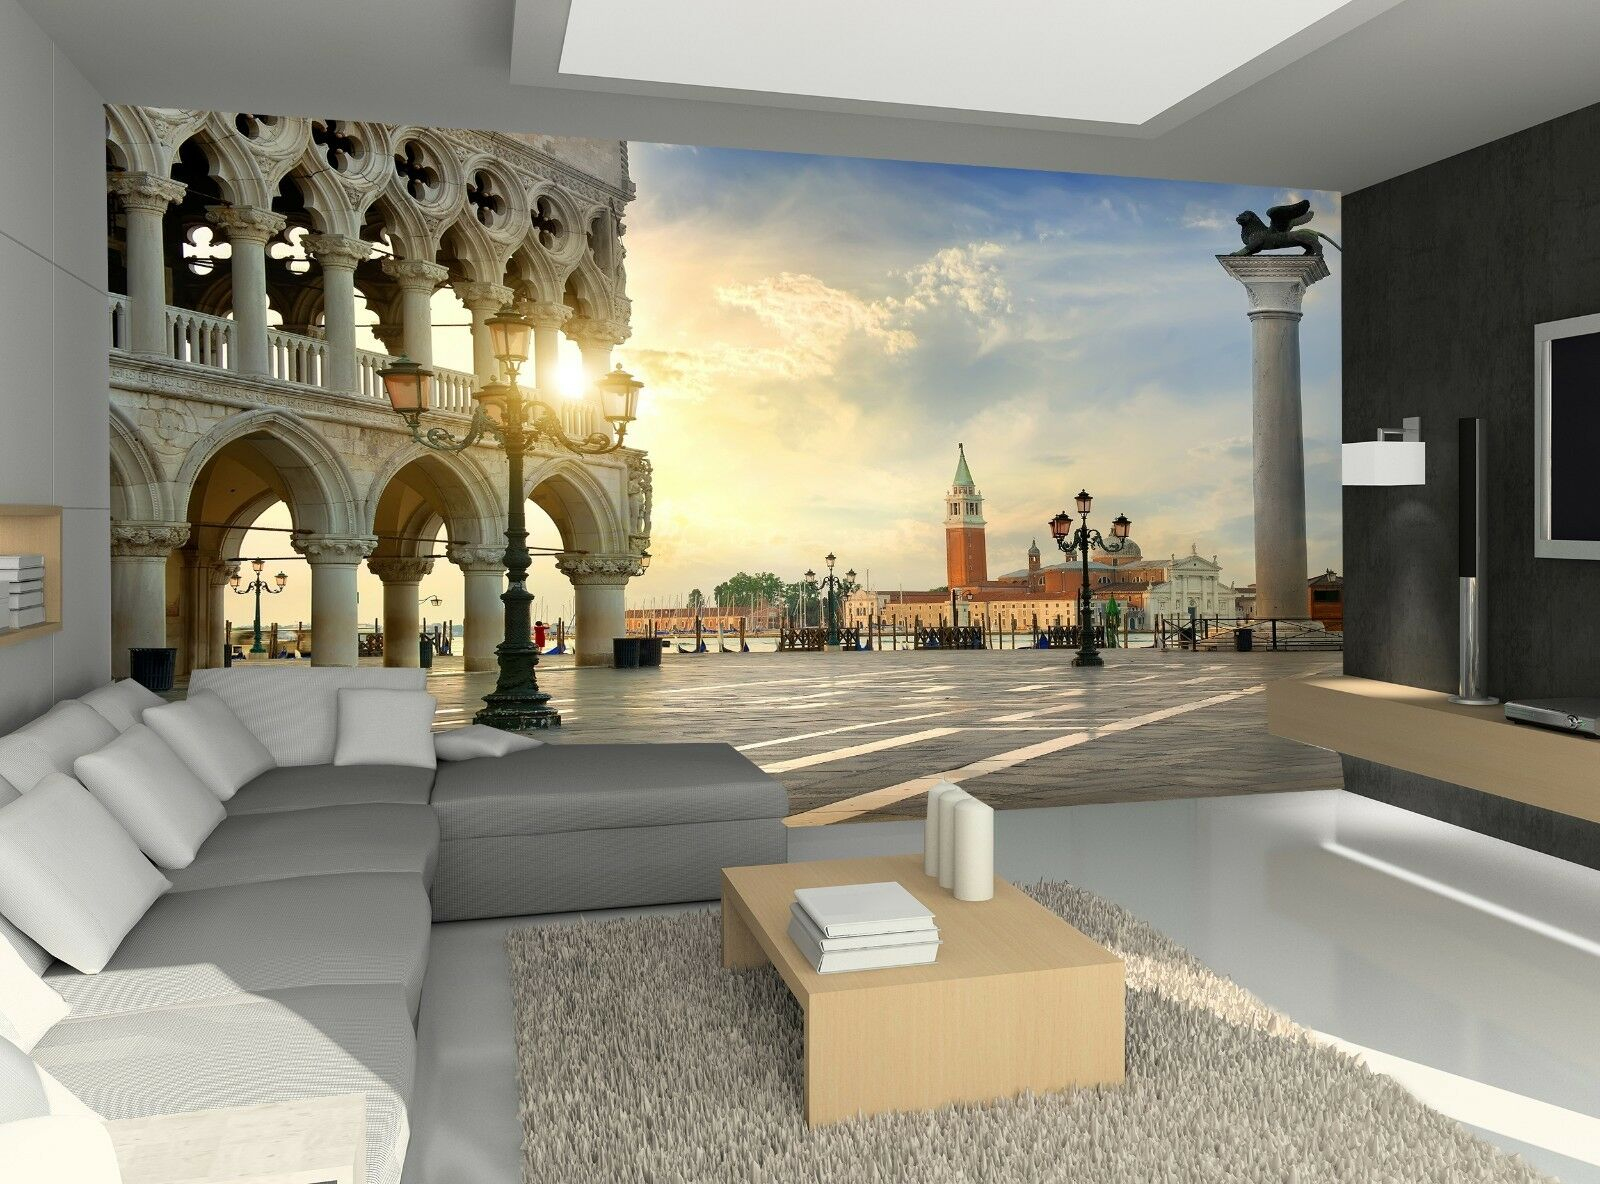 Palace of Doges Wall Mural Photo Wallpaper GIANT WALL DECOR Paper Poster